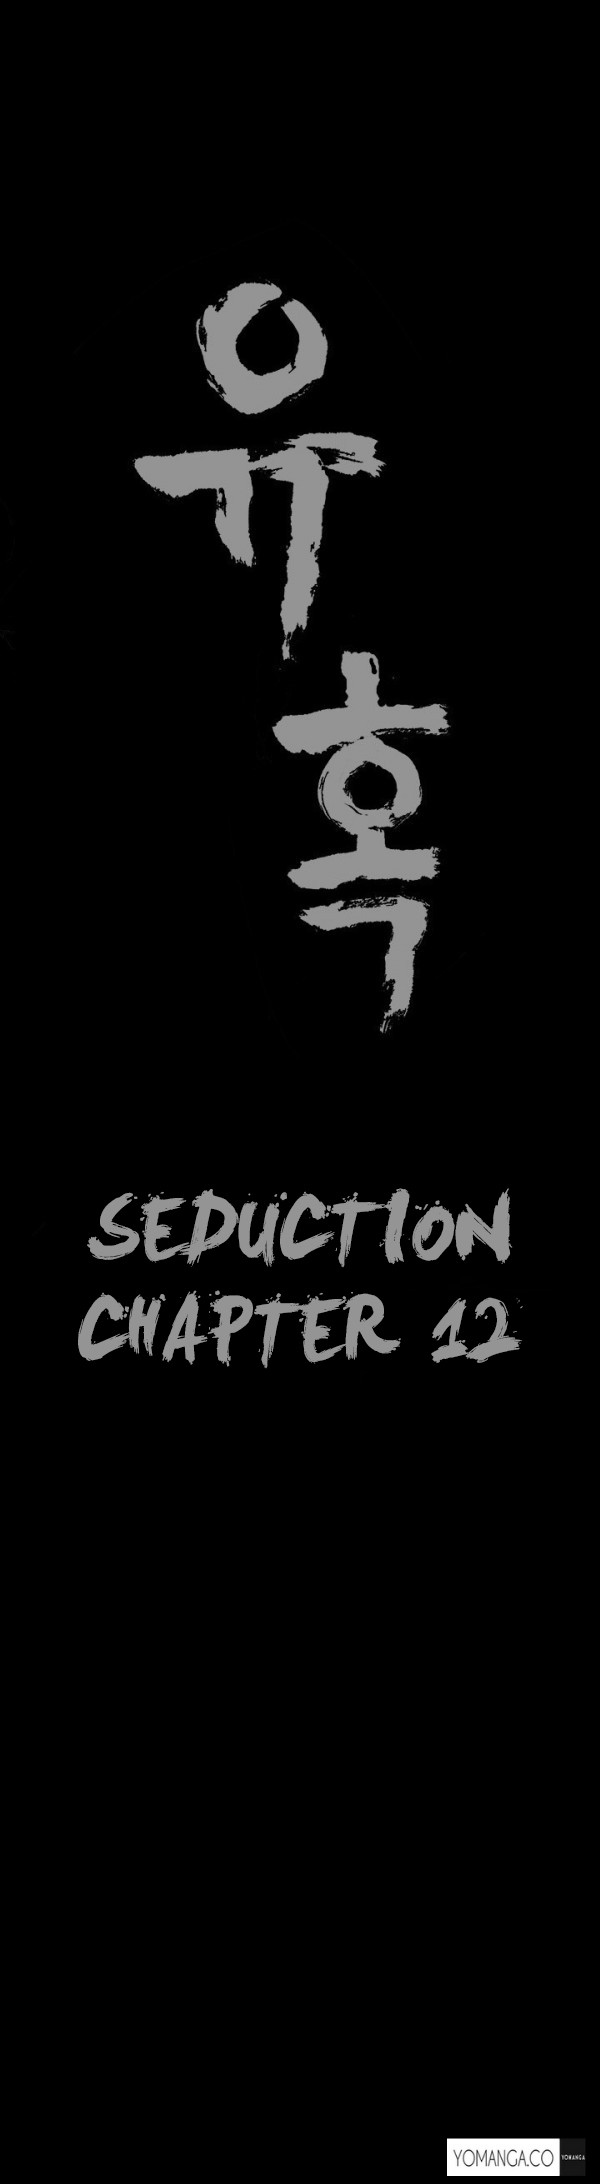 Image 283 in Seduction Ch.1-23